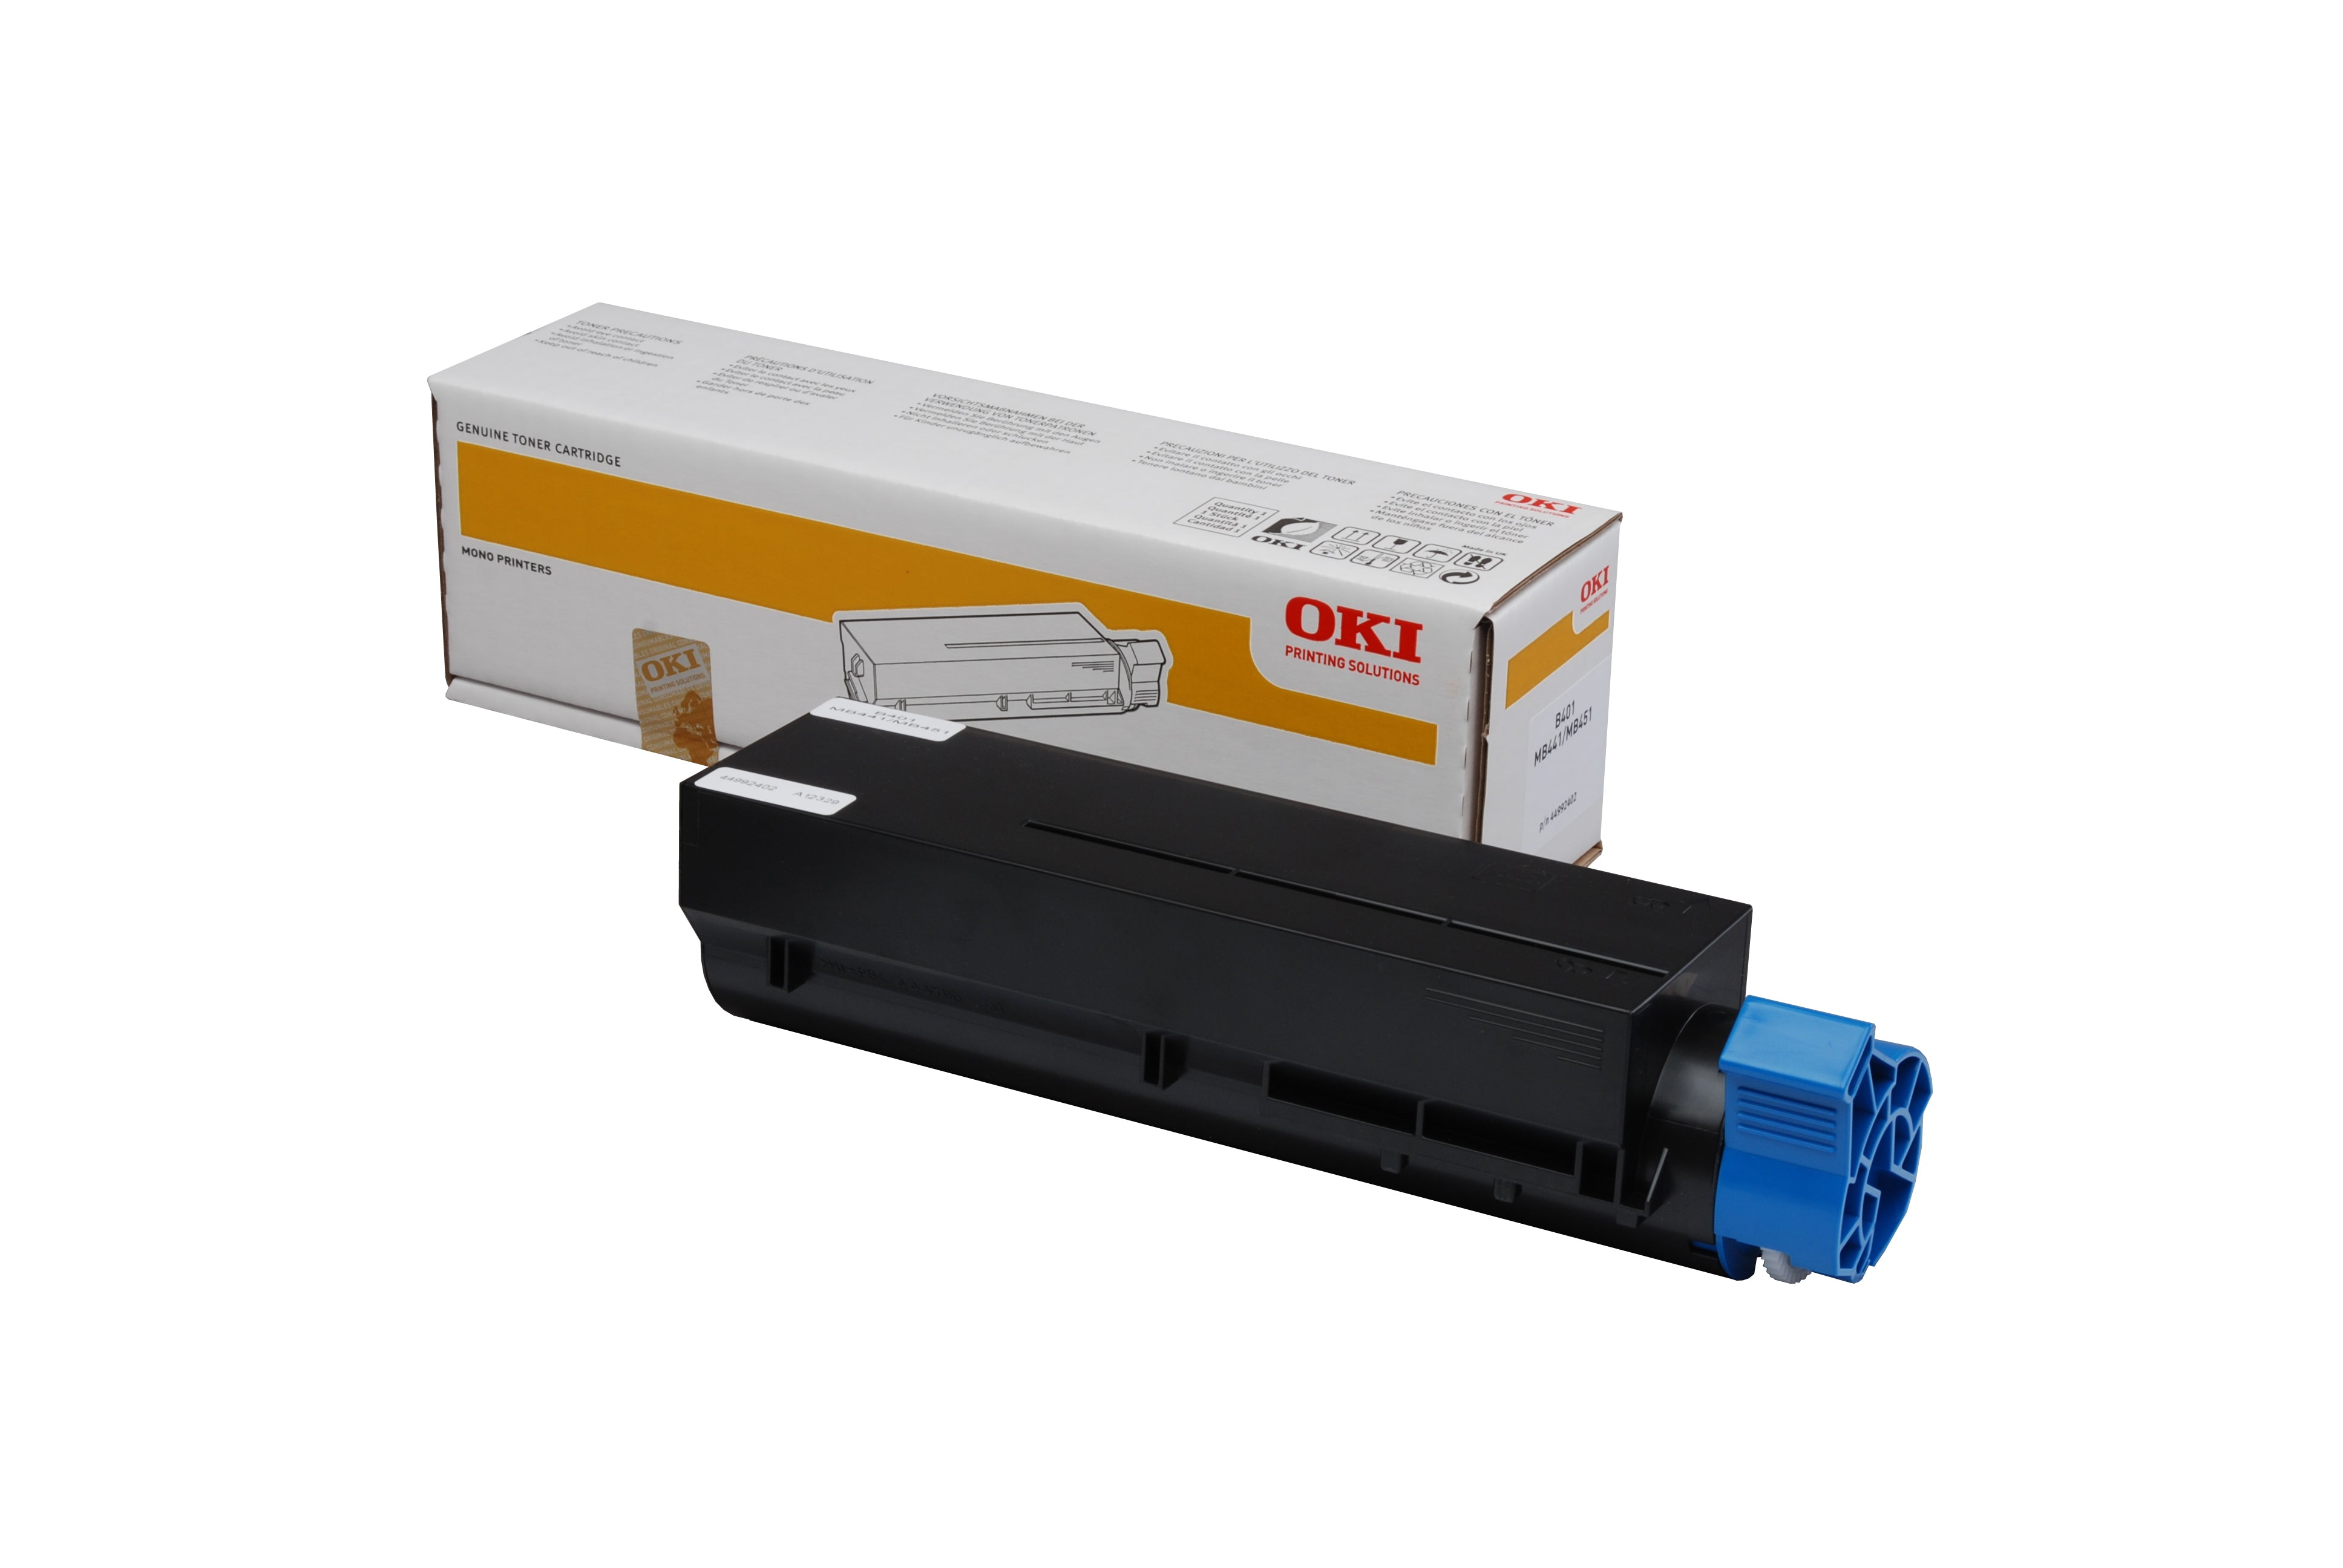 OKI MB451dnw Black Toner (1,500 Pages) 44992406